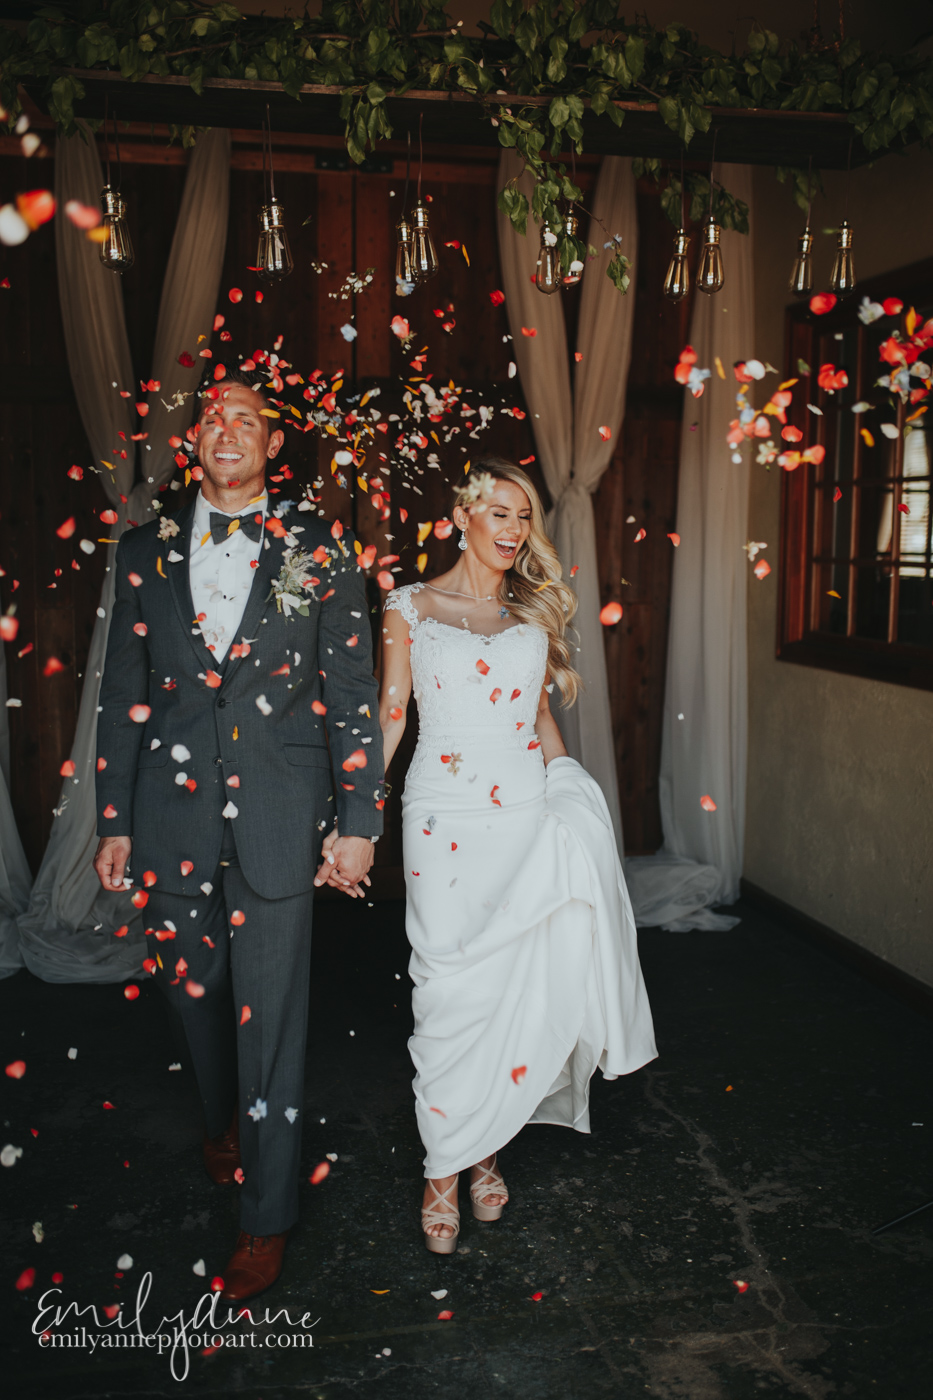 cutest wedding exit throwing petals as the bride and groom leave Foundry Events weddings top Nashville Atlanta and Spain Madrid/Barcelona Wedding Photographer